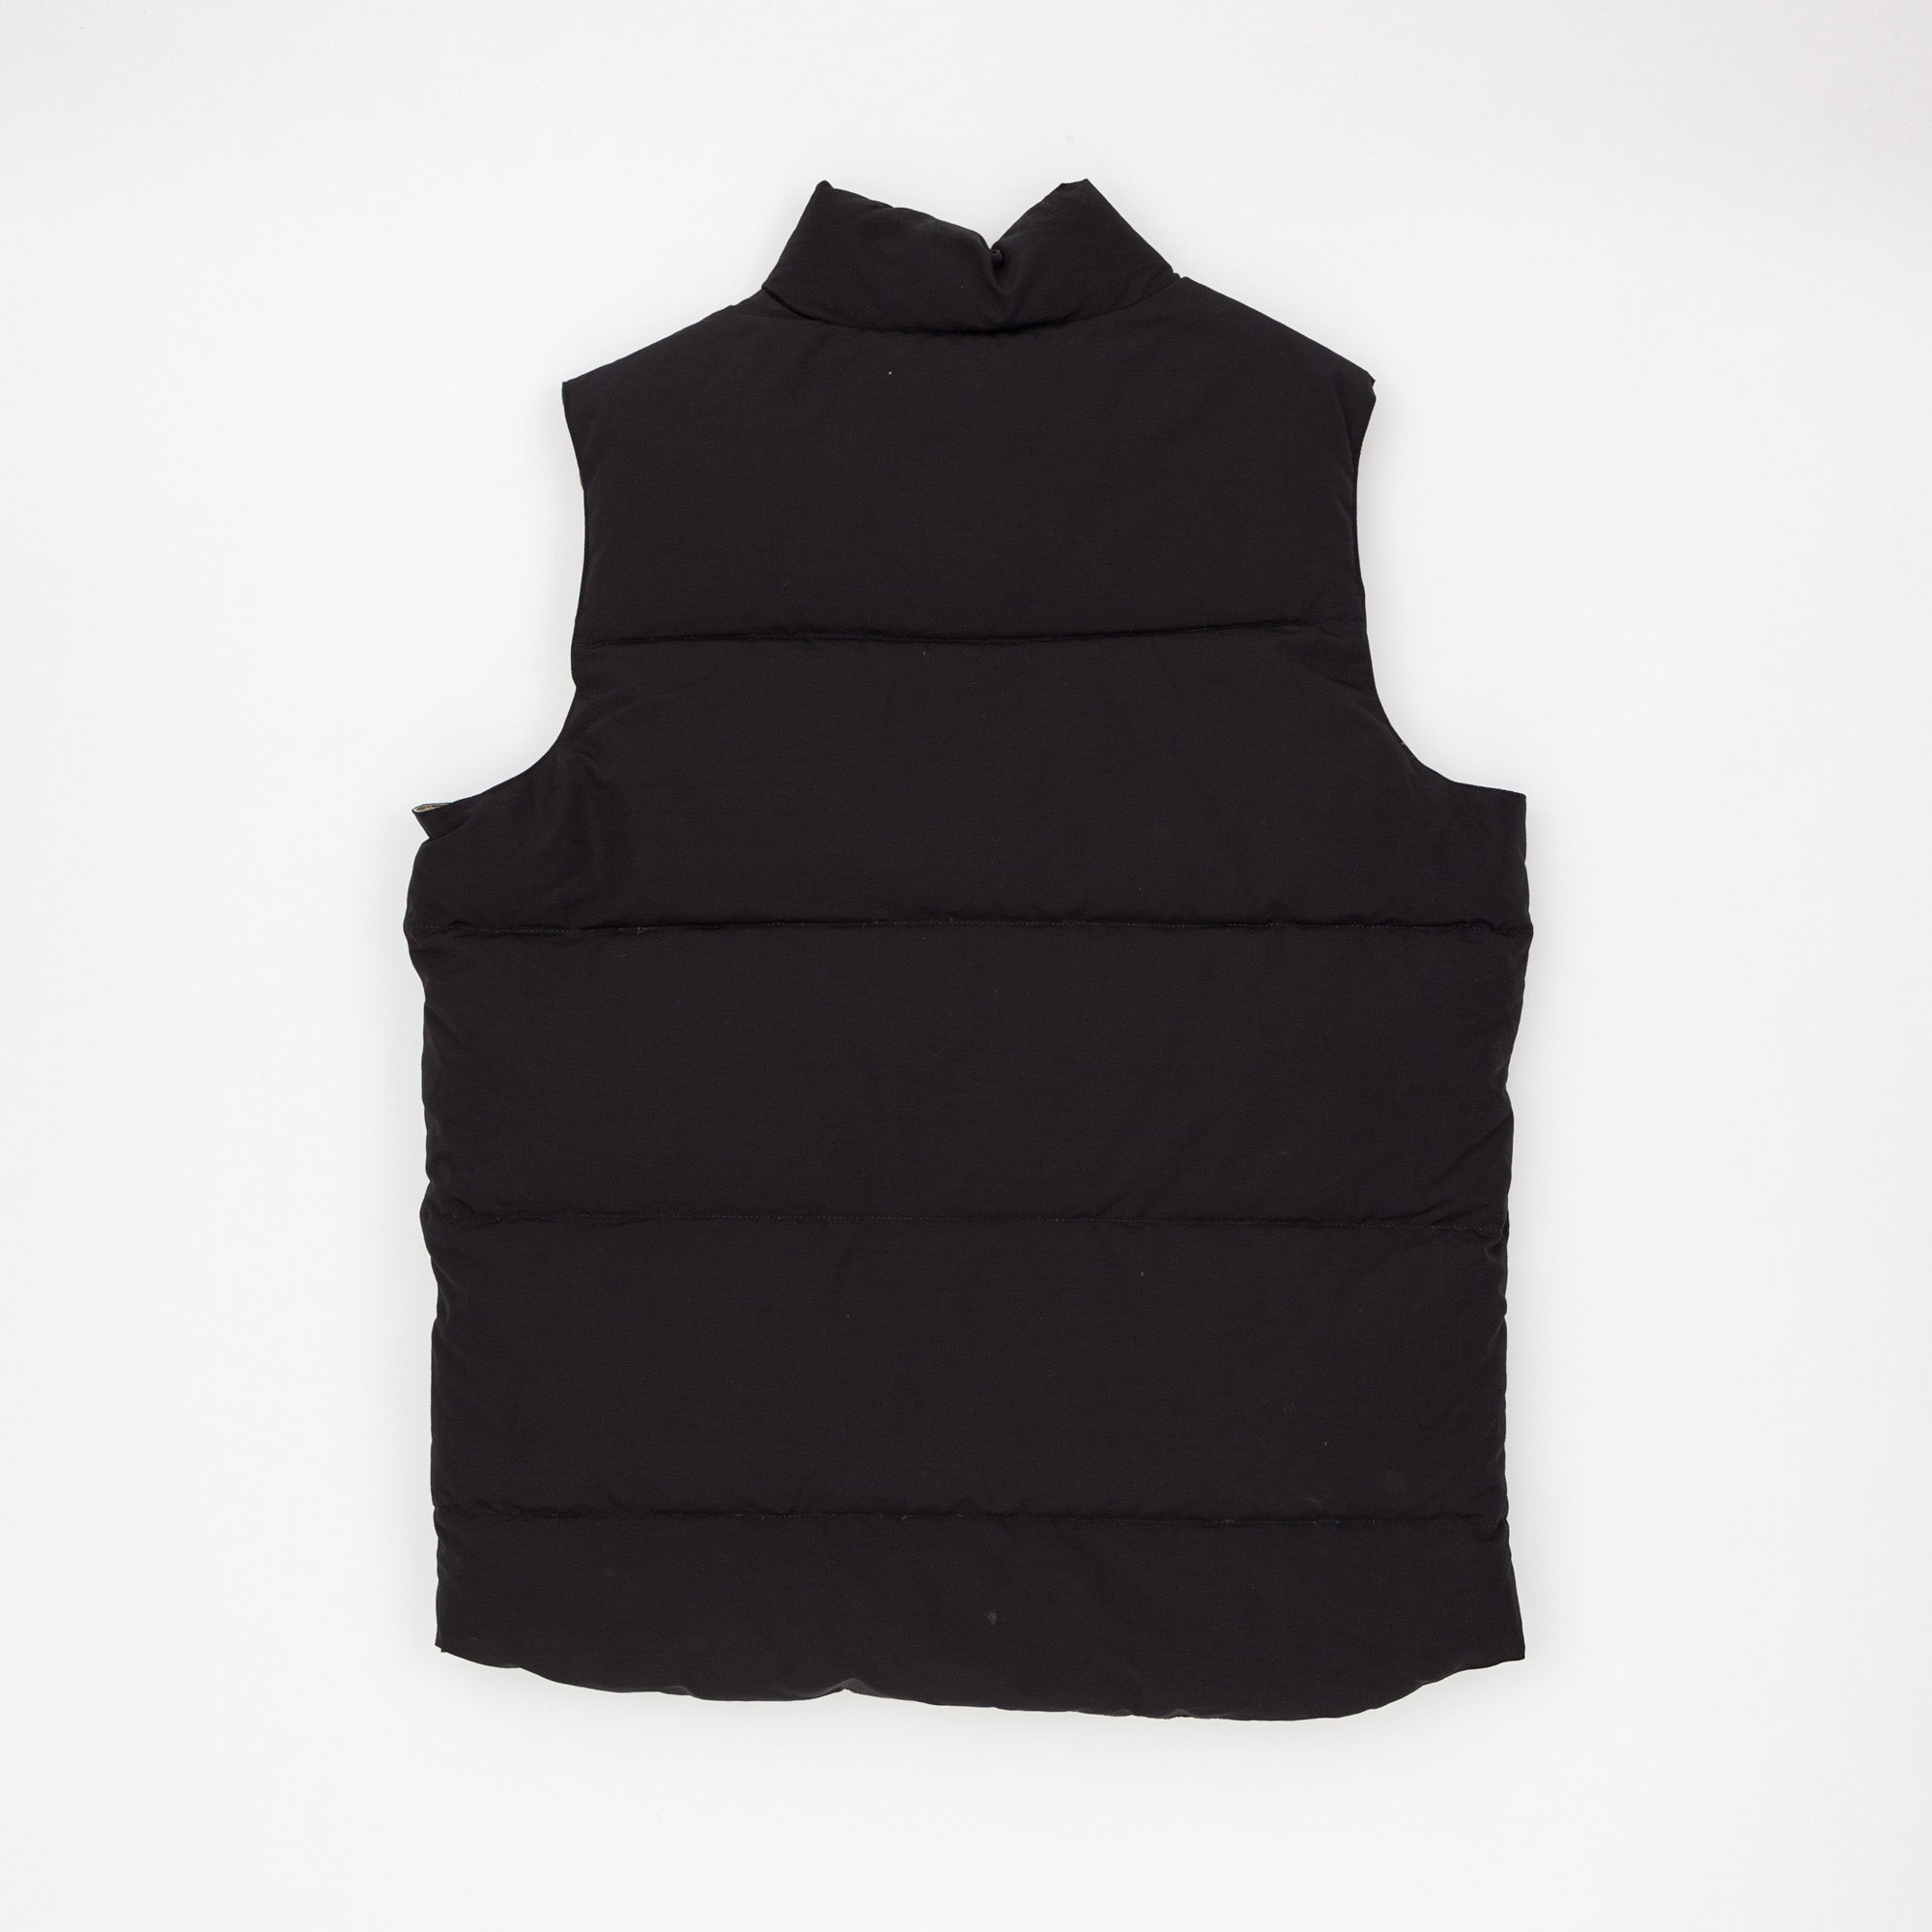 Insulated Outback Vest